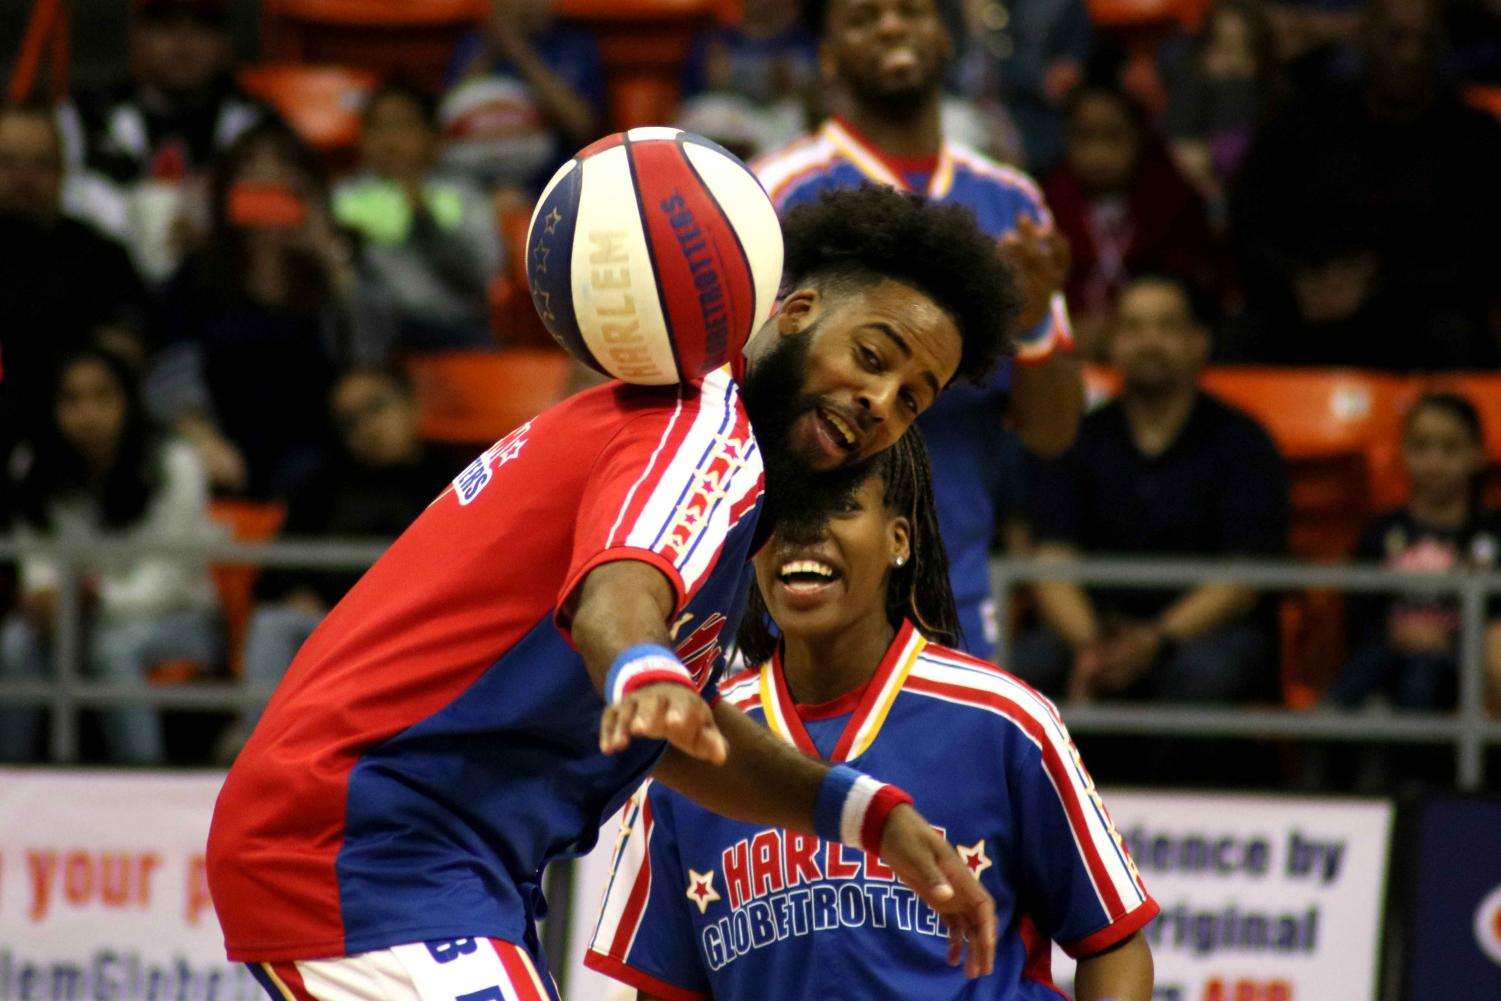 The Harlem Globetrotters perform their show at the Don Haskins Center in El Paso, TX, Sunday, March 10, 2019.